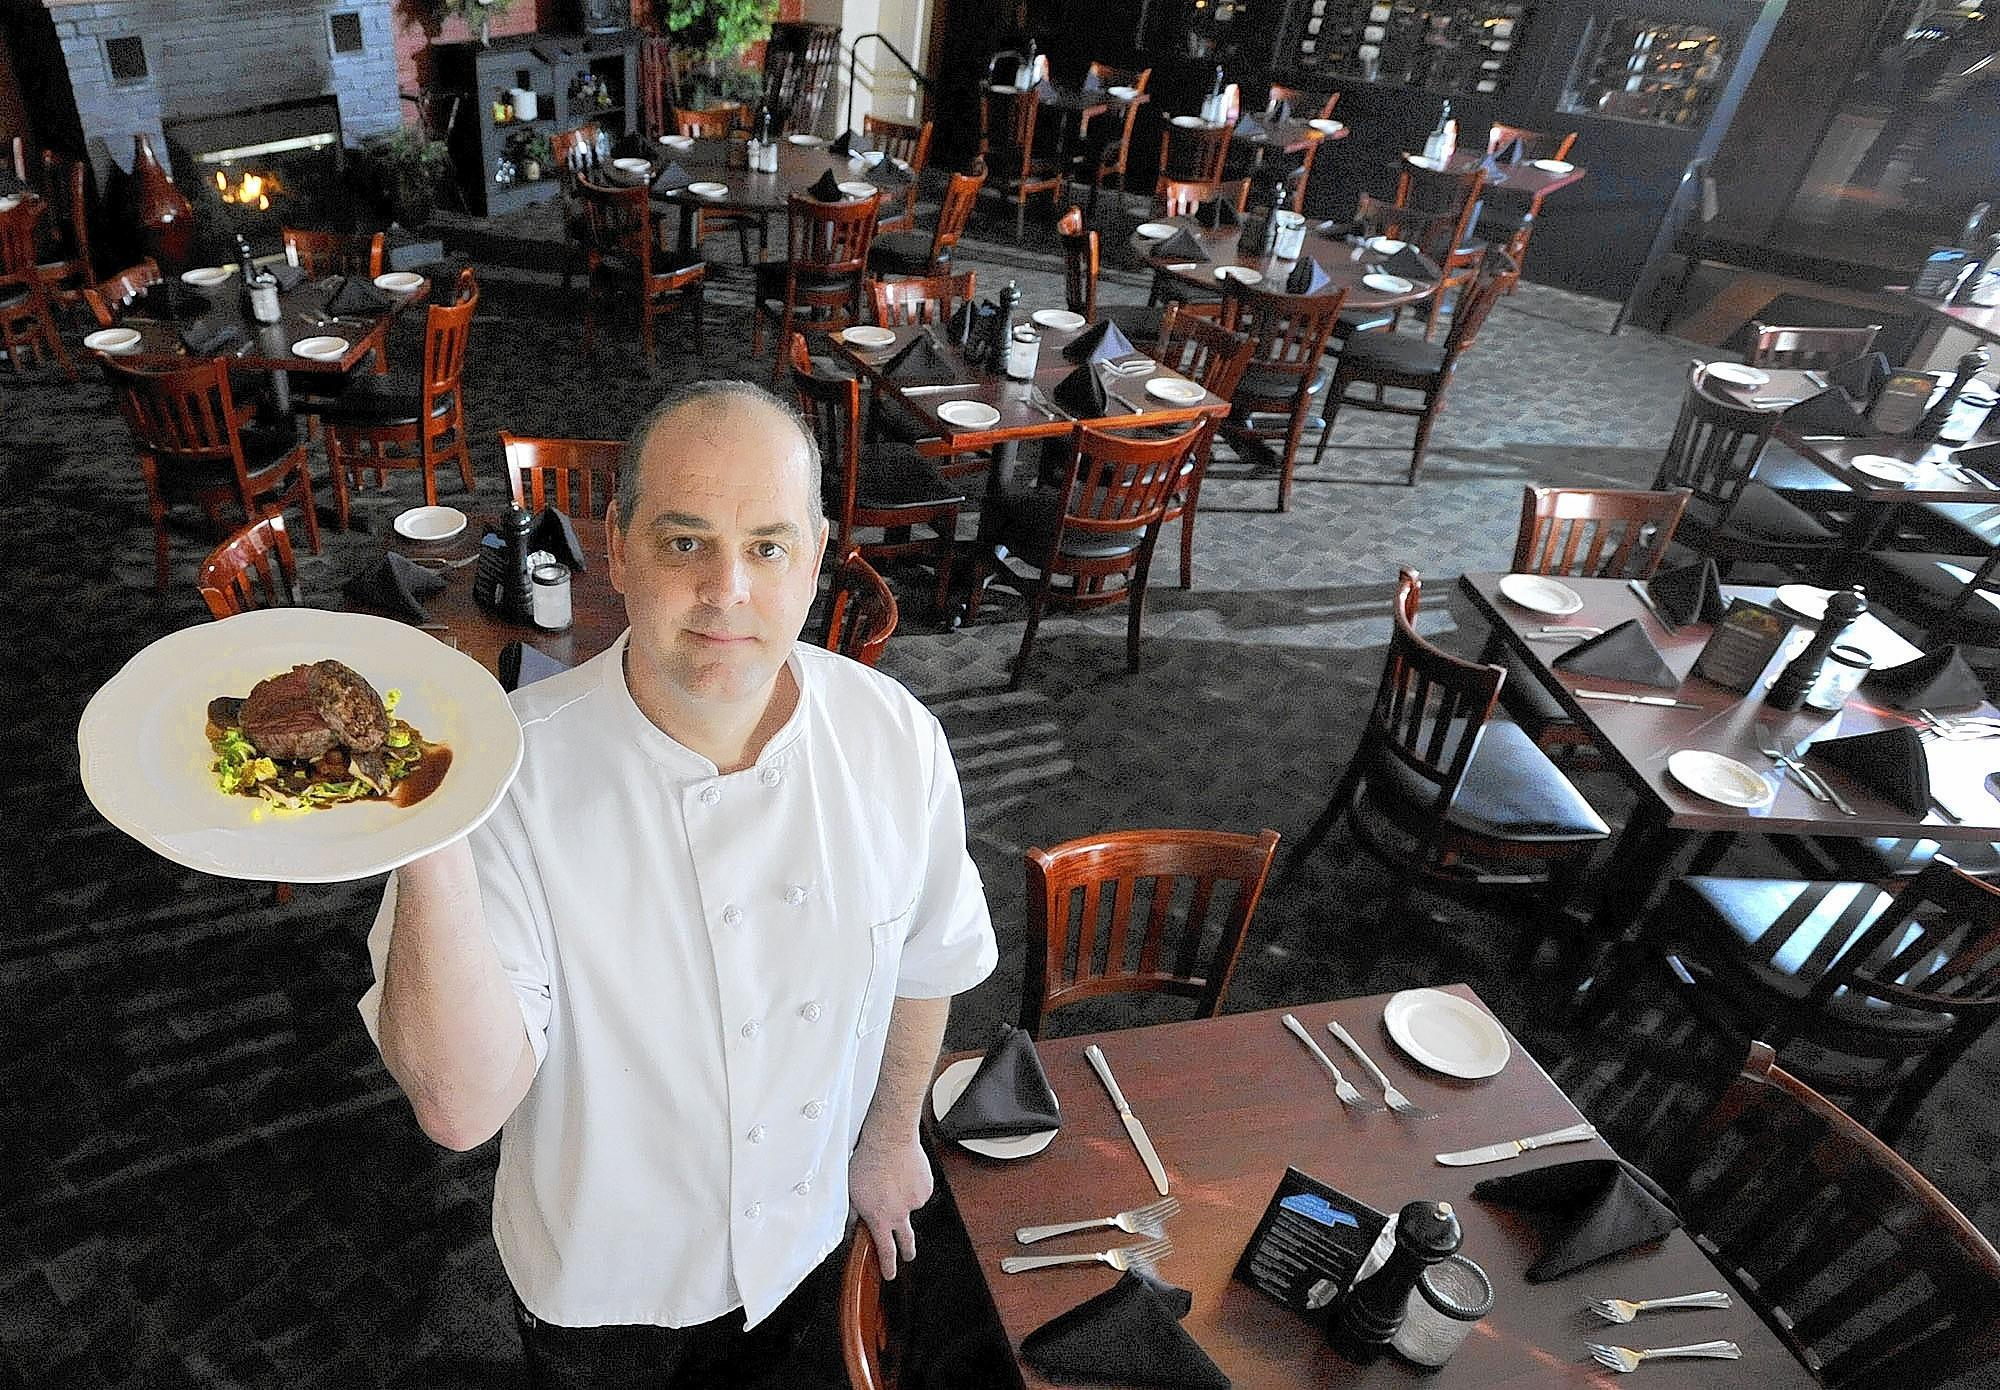 Marco Lombardini, new executive chef at the Grille at Peerce's, holds a seared beef tenderloin, served with mushrooms, brussell sprouts, diced baby potatoes and a red wine sauce, in the restaurant's Phoenix dining room Feb. 12.